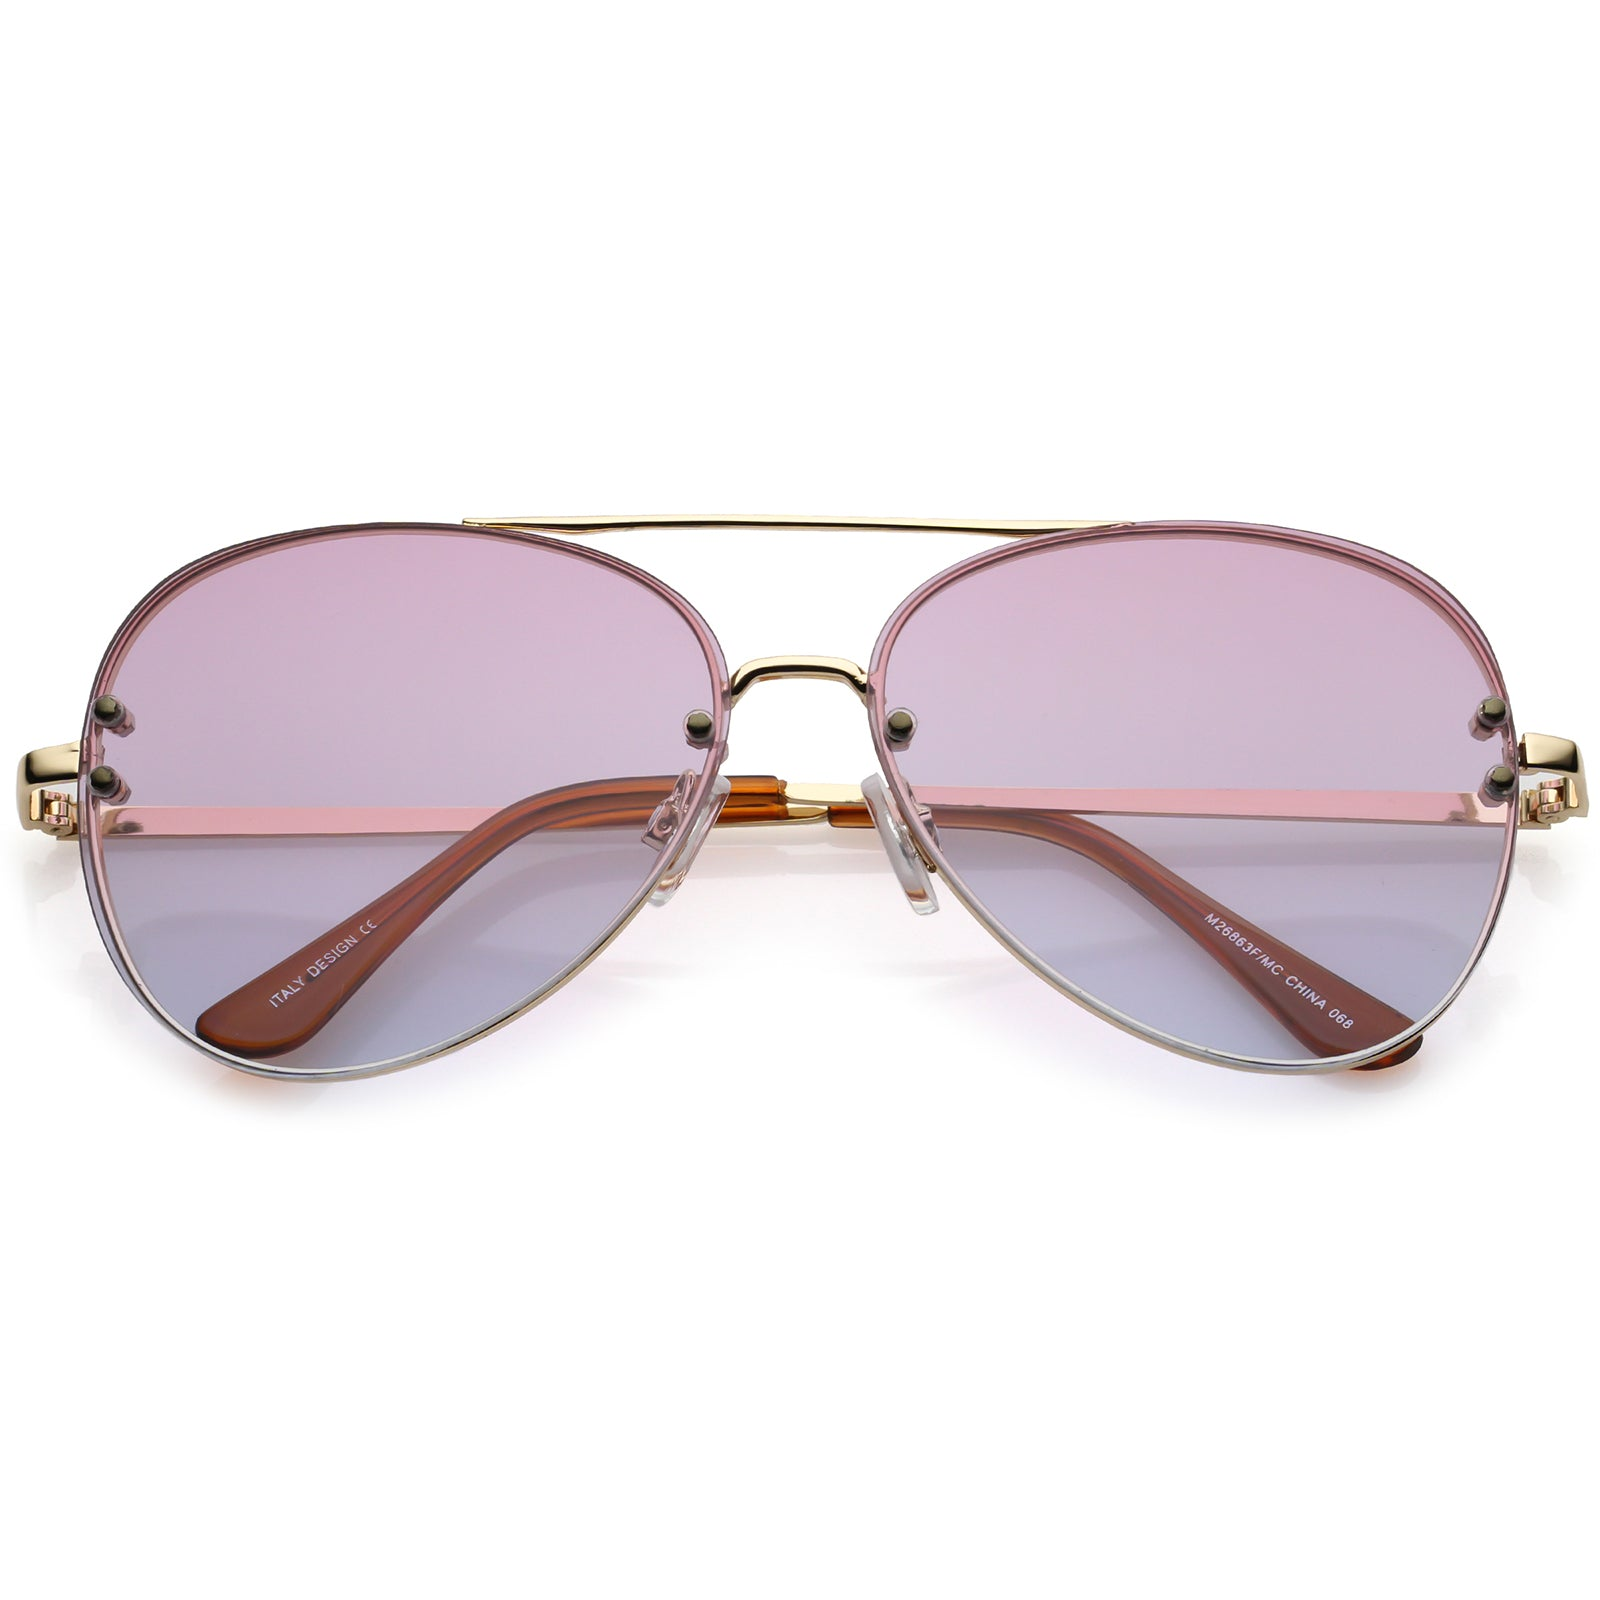 d63945eec1 Oversize Rimless Aviator Sunglasses Double Crossbar Gradient Lens ...